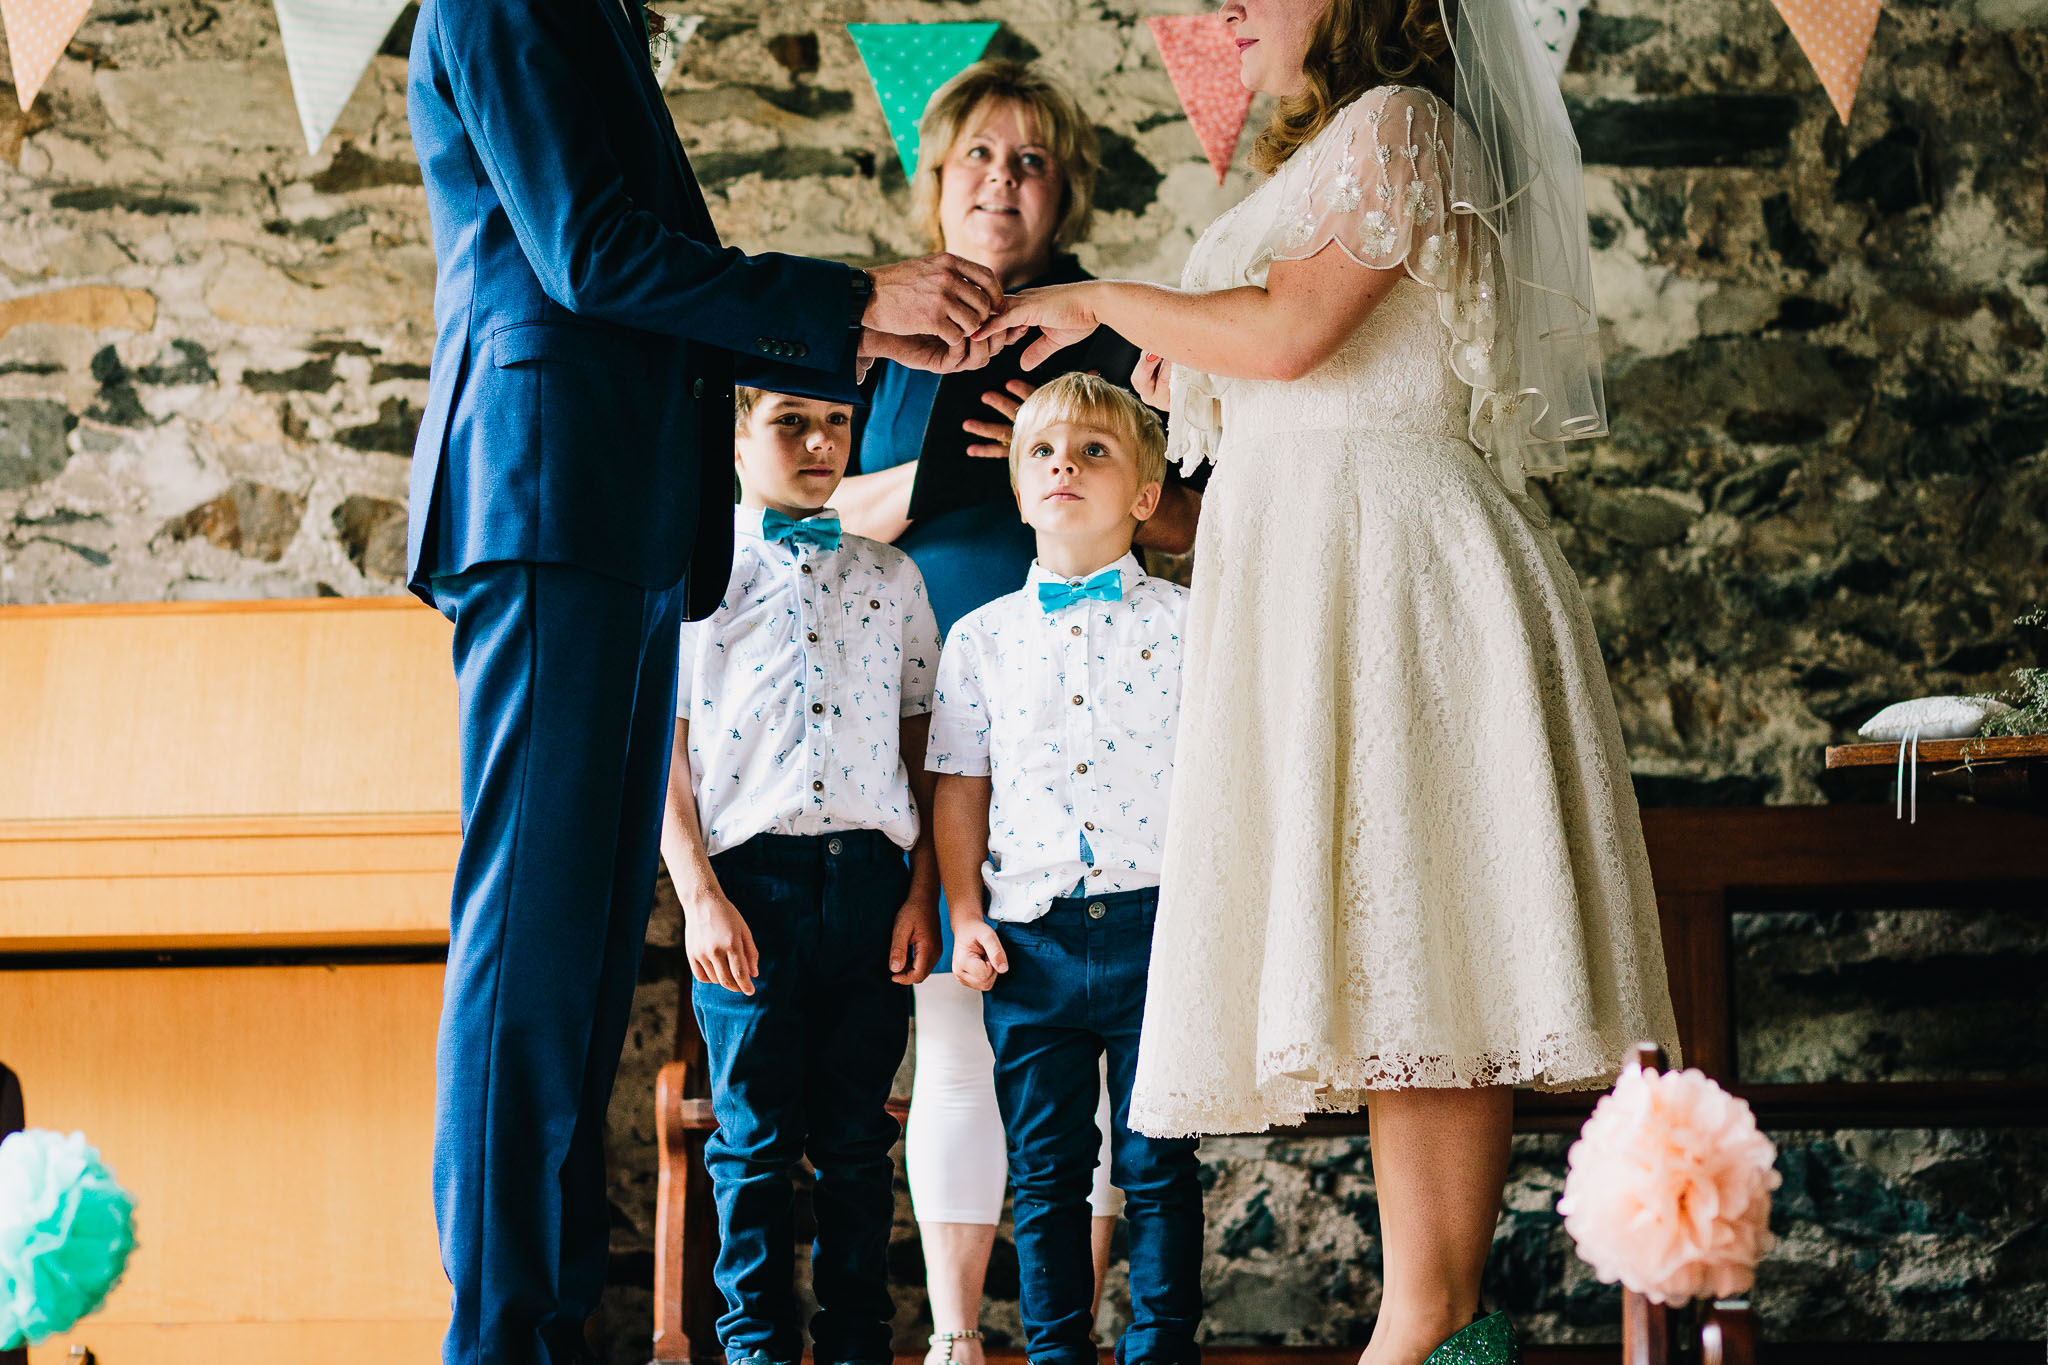 BOY LOOKING UP AT BRIDE PUTTING WEDDING RING ON GROOMS FINGER